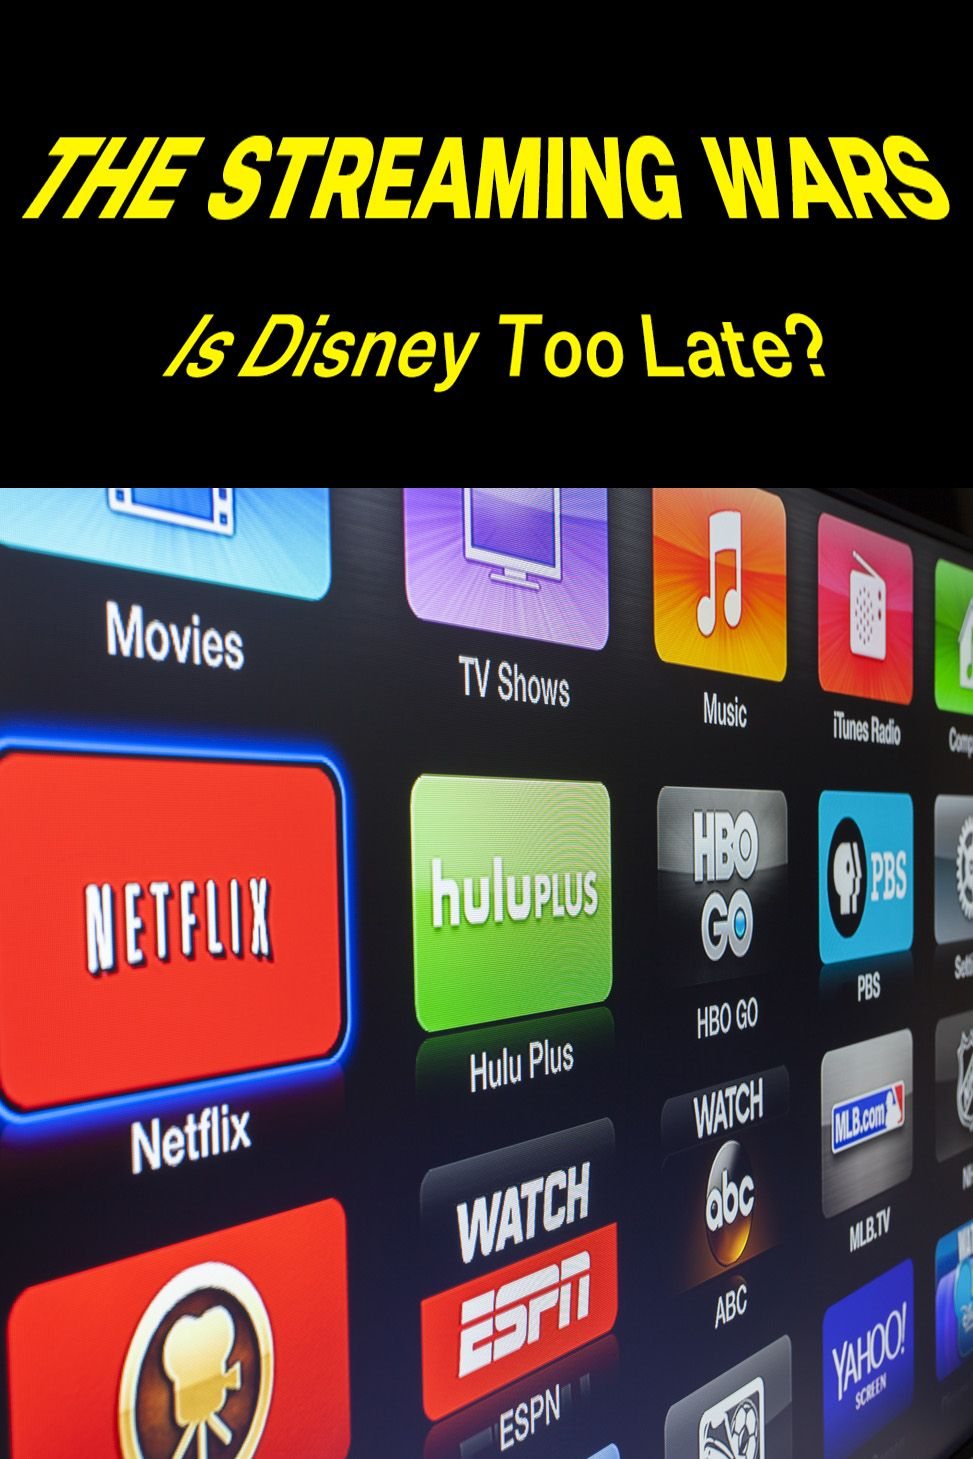 Is Disney's entry into digital streaming too late to pose a threat to the big players? #Disney #DisneyPlus #Netflix #Hulu #AmazonPrime #AmazonPrimeVideo #SVOD #Streaming #Marketing #Strategy #entertainment #TV #business #competitors #GLOBIS #Japan #JapaneseMarket